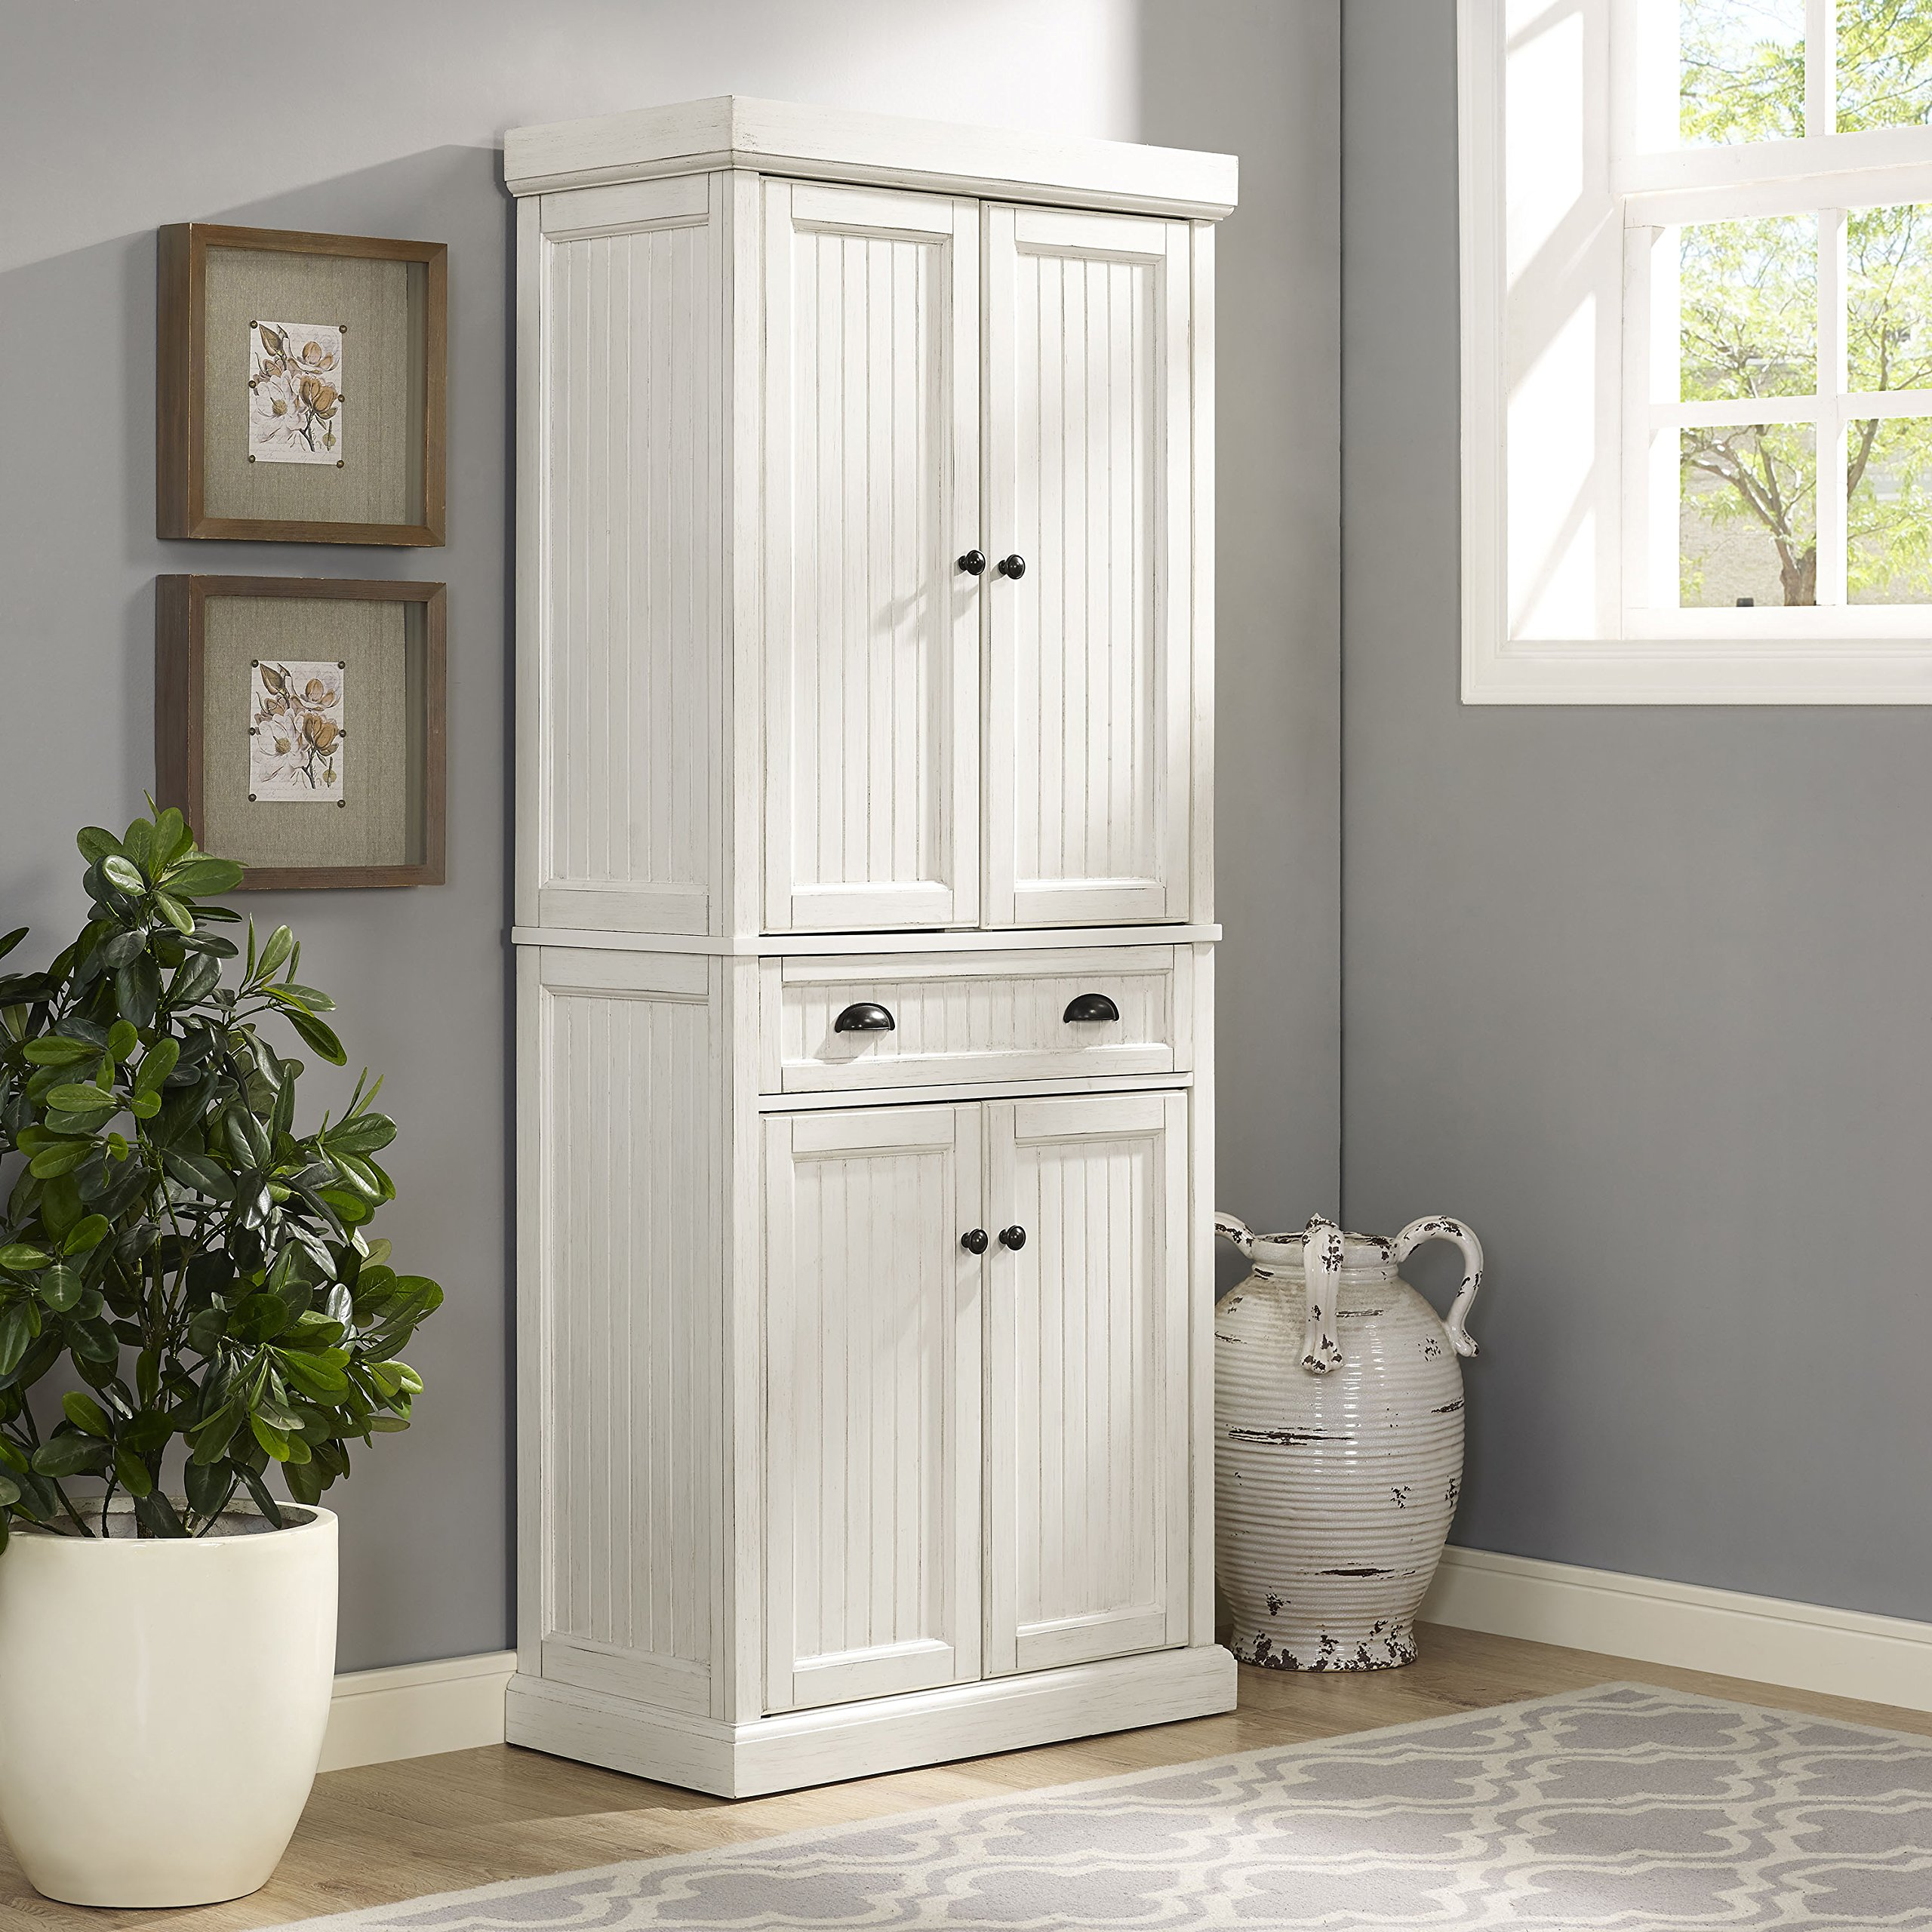 Crosley Furniture Seaside Kitchen Pantry Cabinet - Distressed White by Crosley Furniture (Image #12)